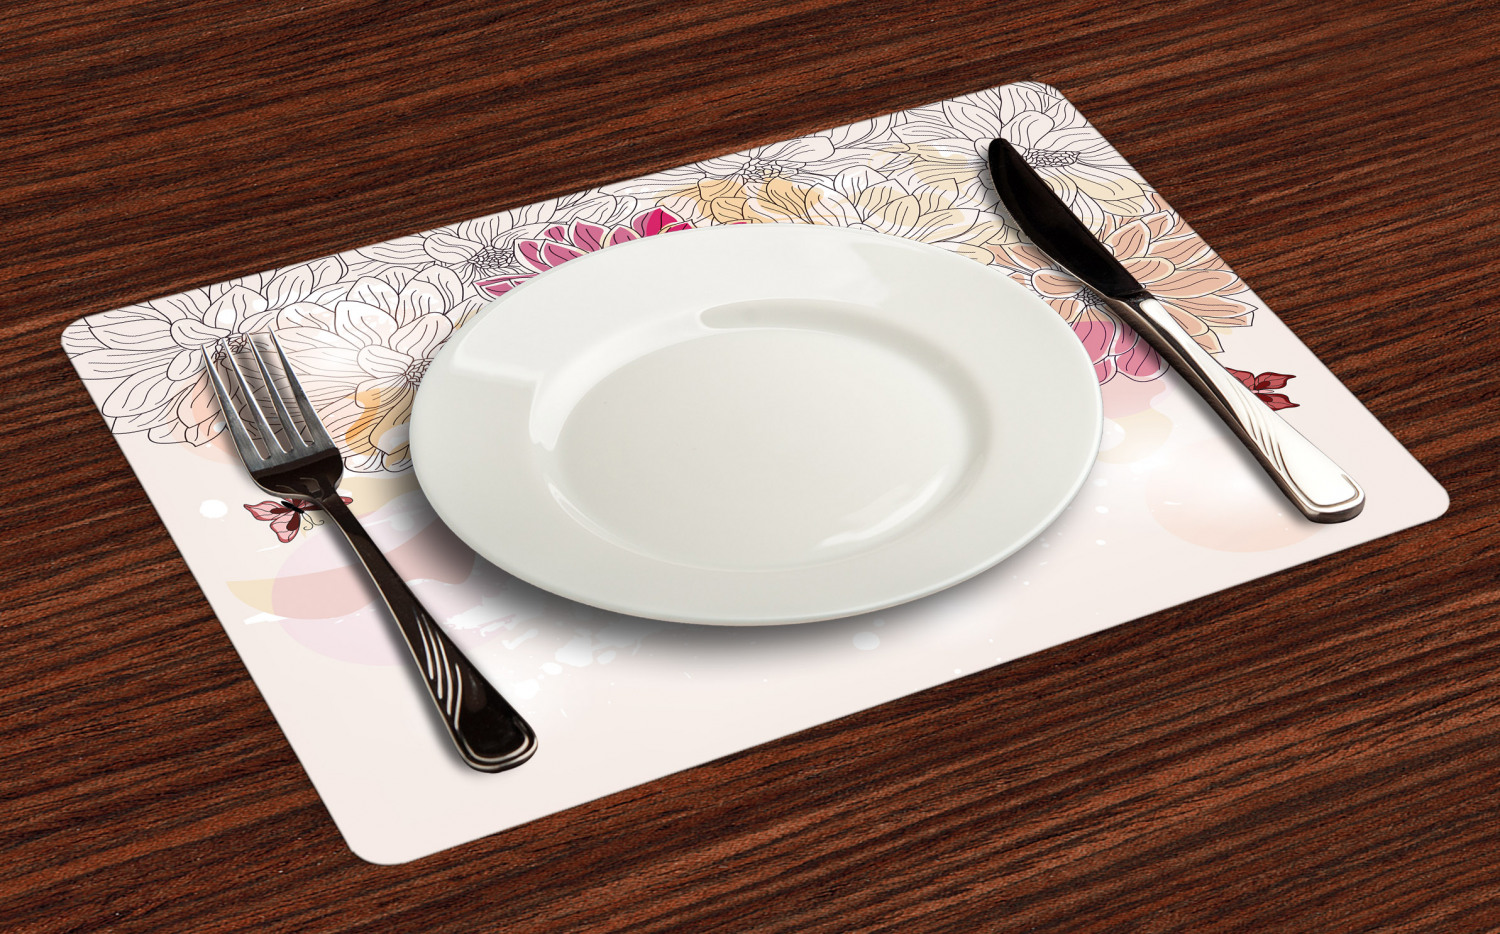 Ambesonne-Flower-Pattern-Placemat-Set-of-4-Fabric-Place-Mats-for-Table-Decor thumbnail 213